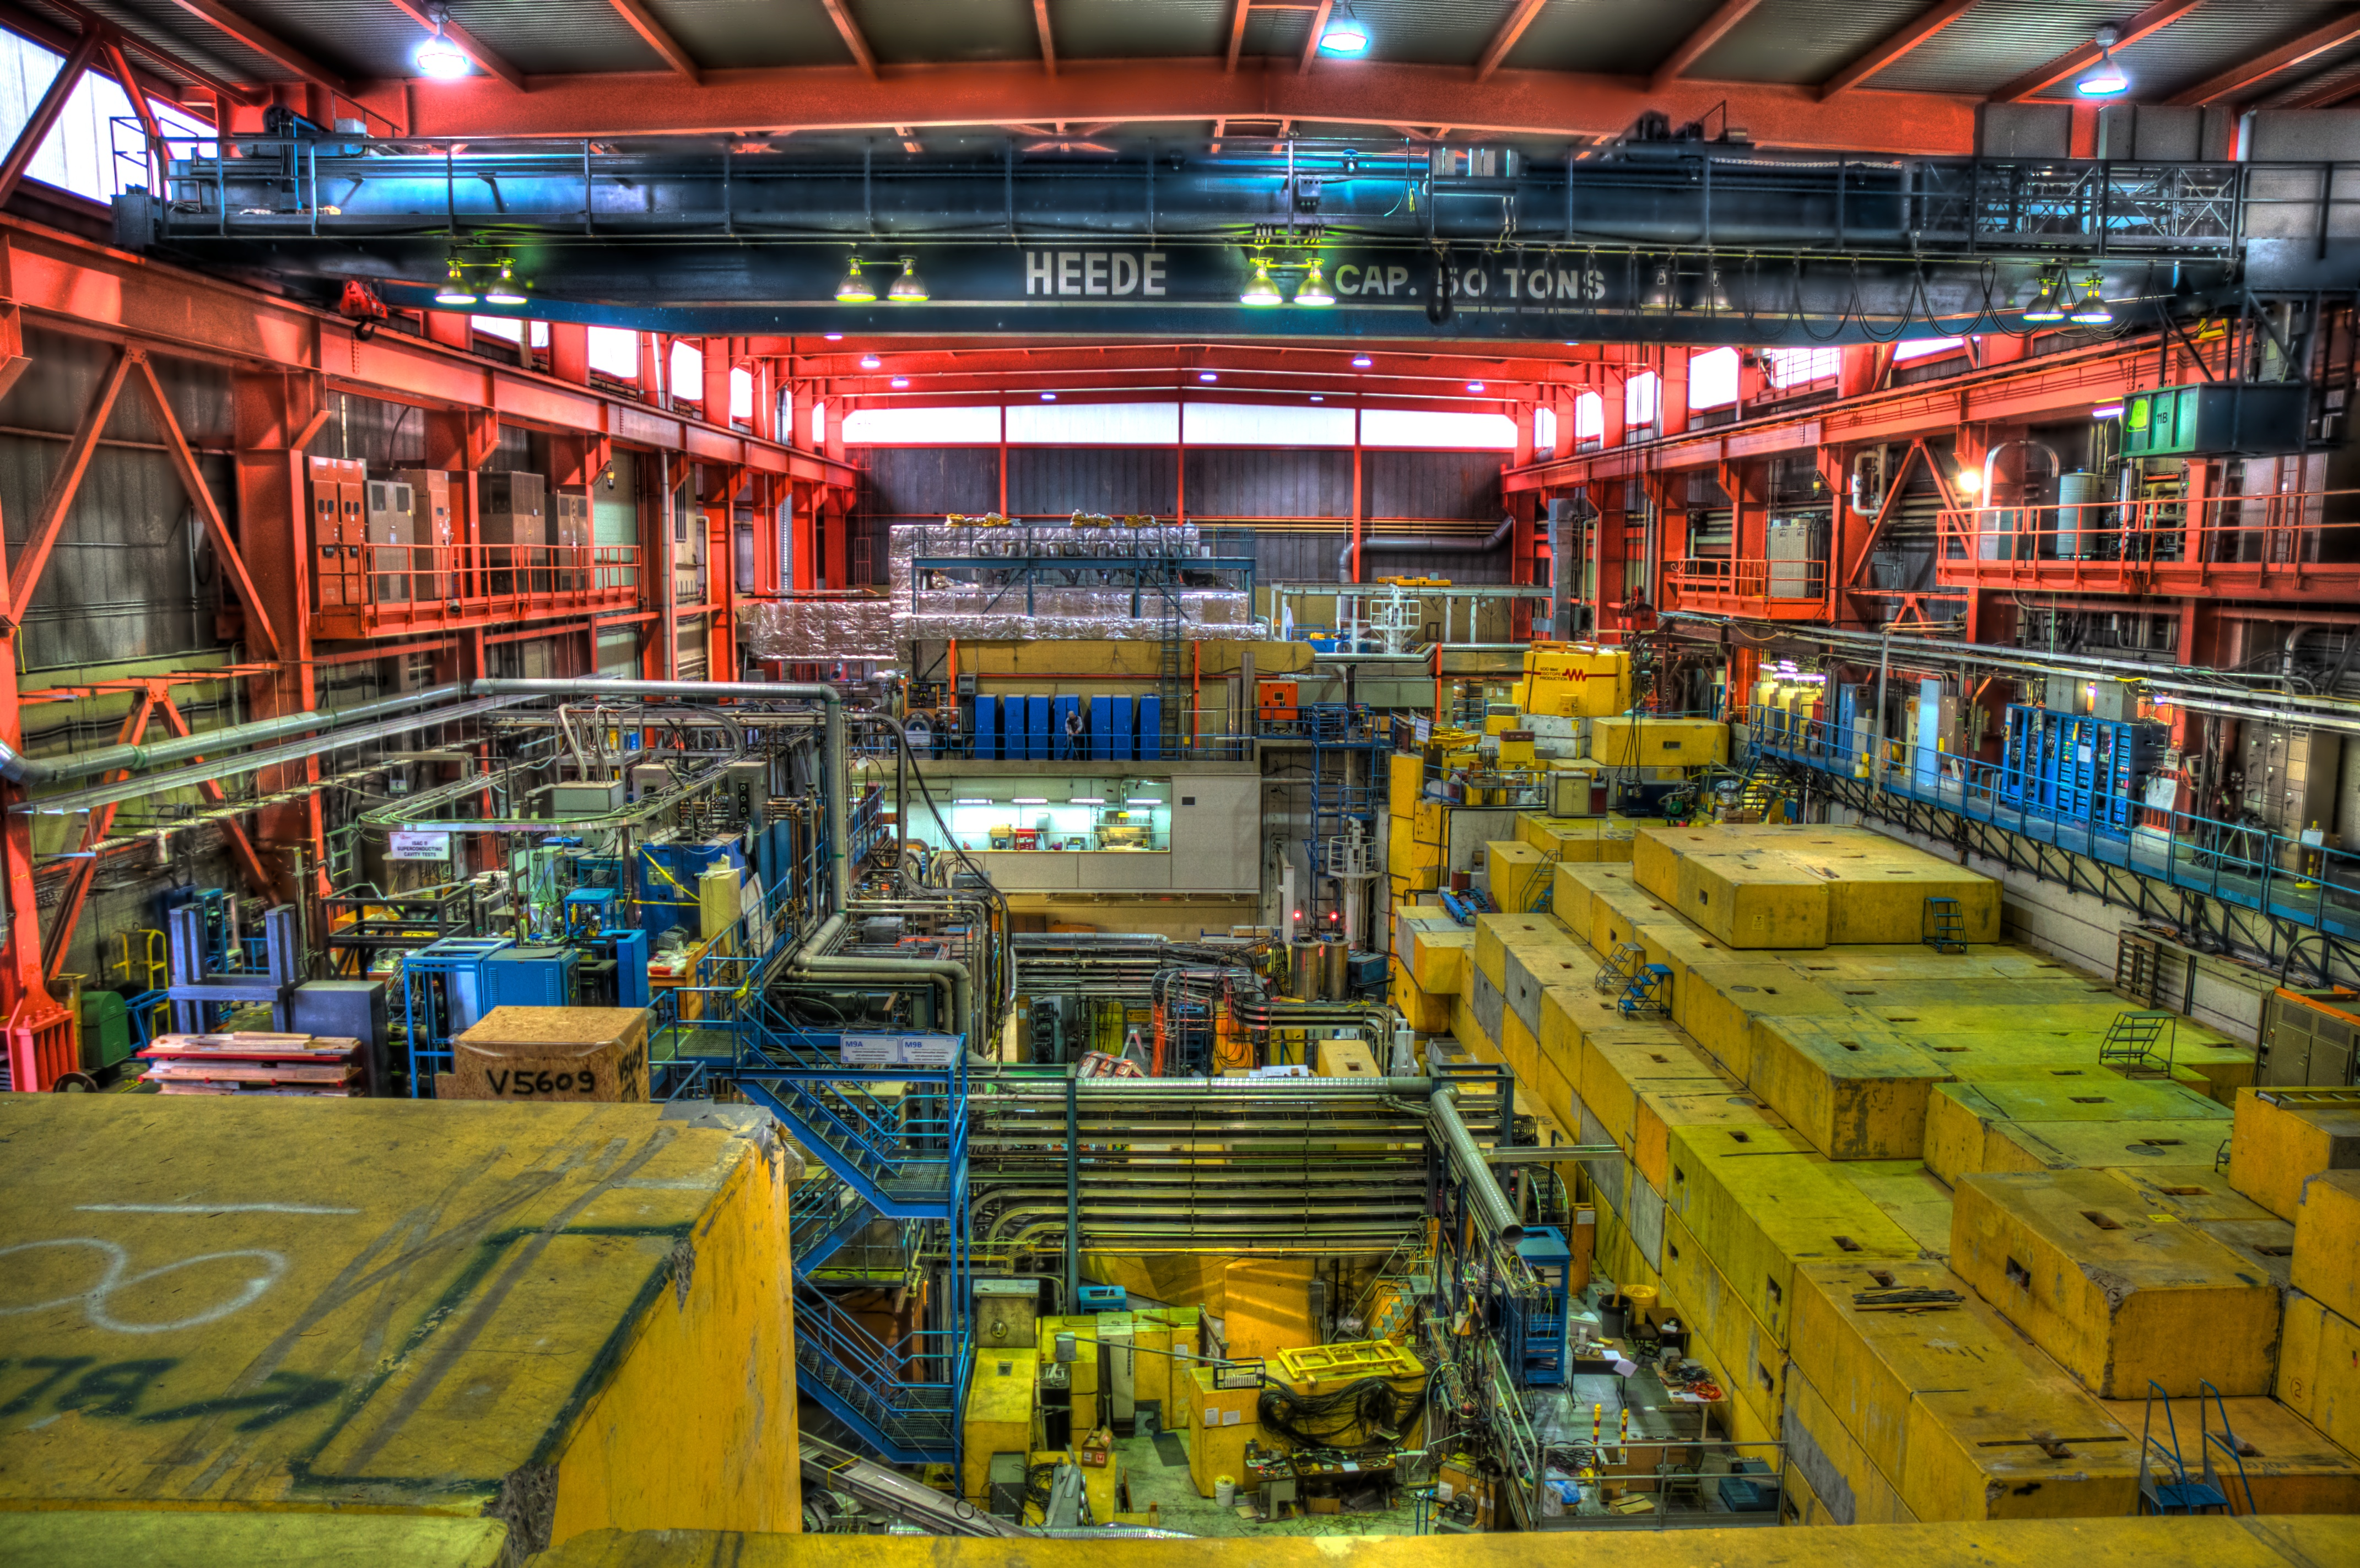 Utilizing particle-acceleration and isotope creation technology like its 500 MeV cyclotron, the largest of its kind in the world, the institute is well-equipped to take on major scientific questions.